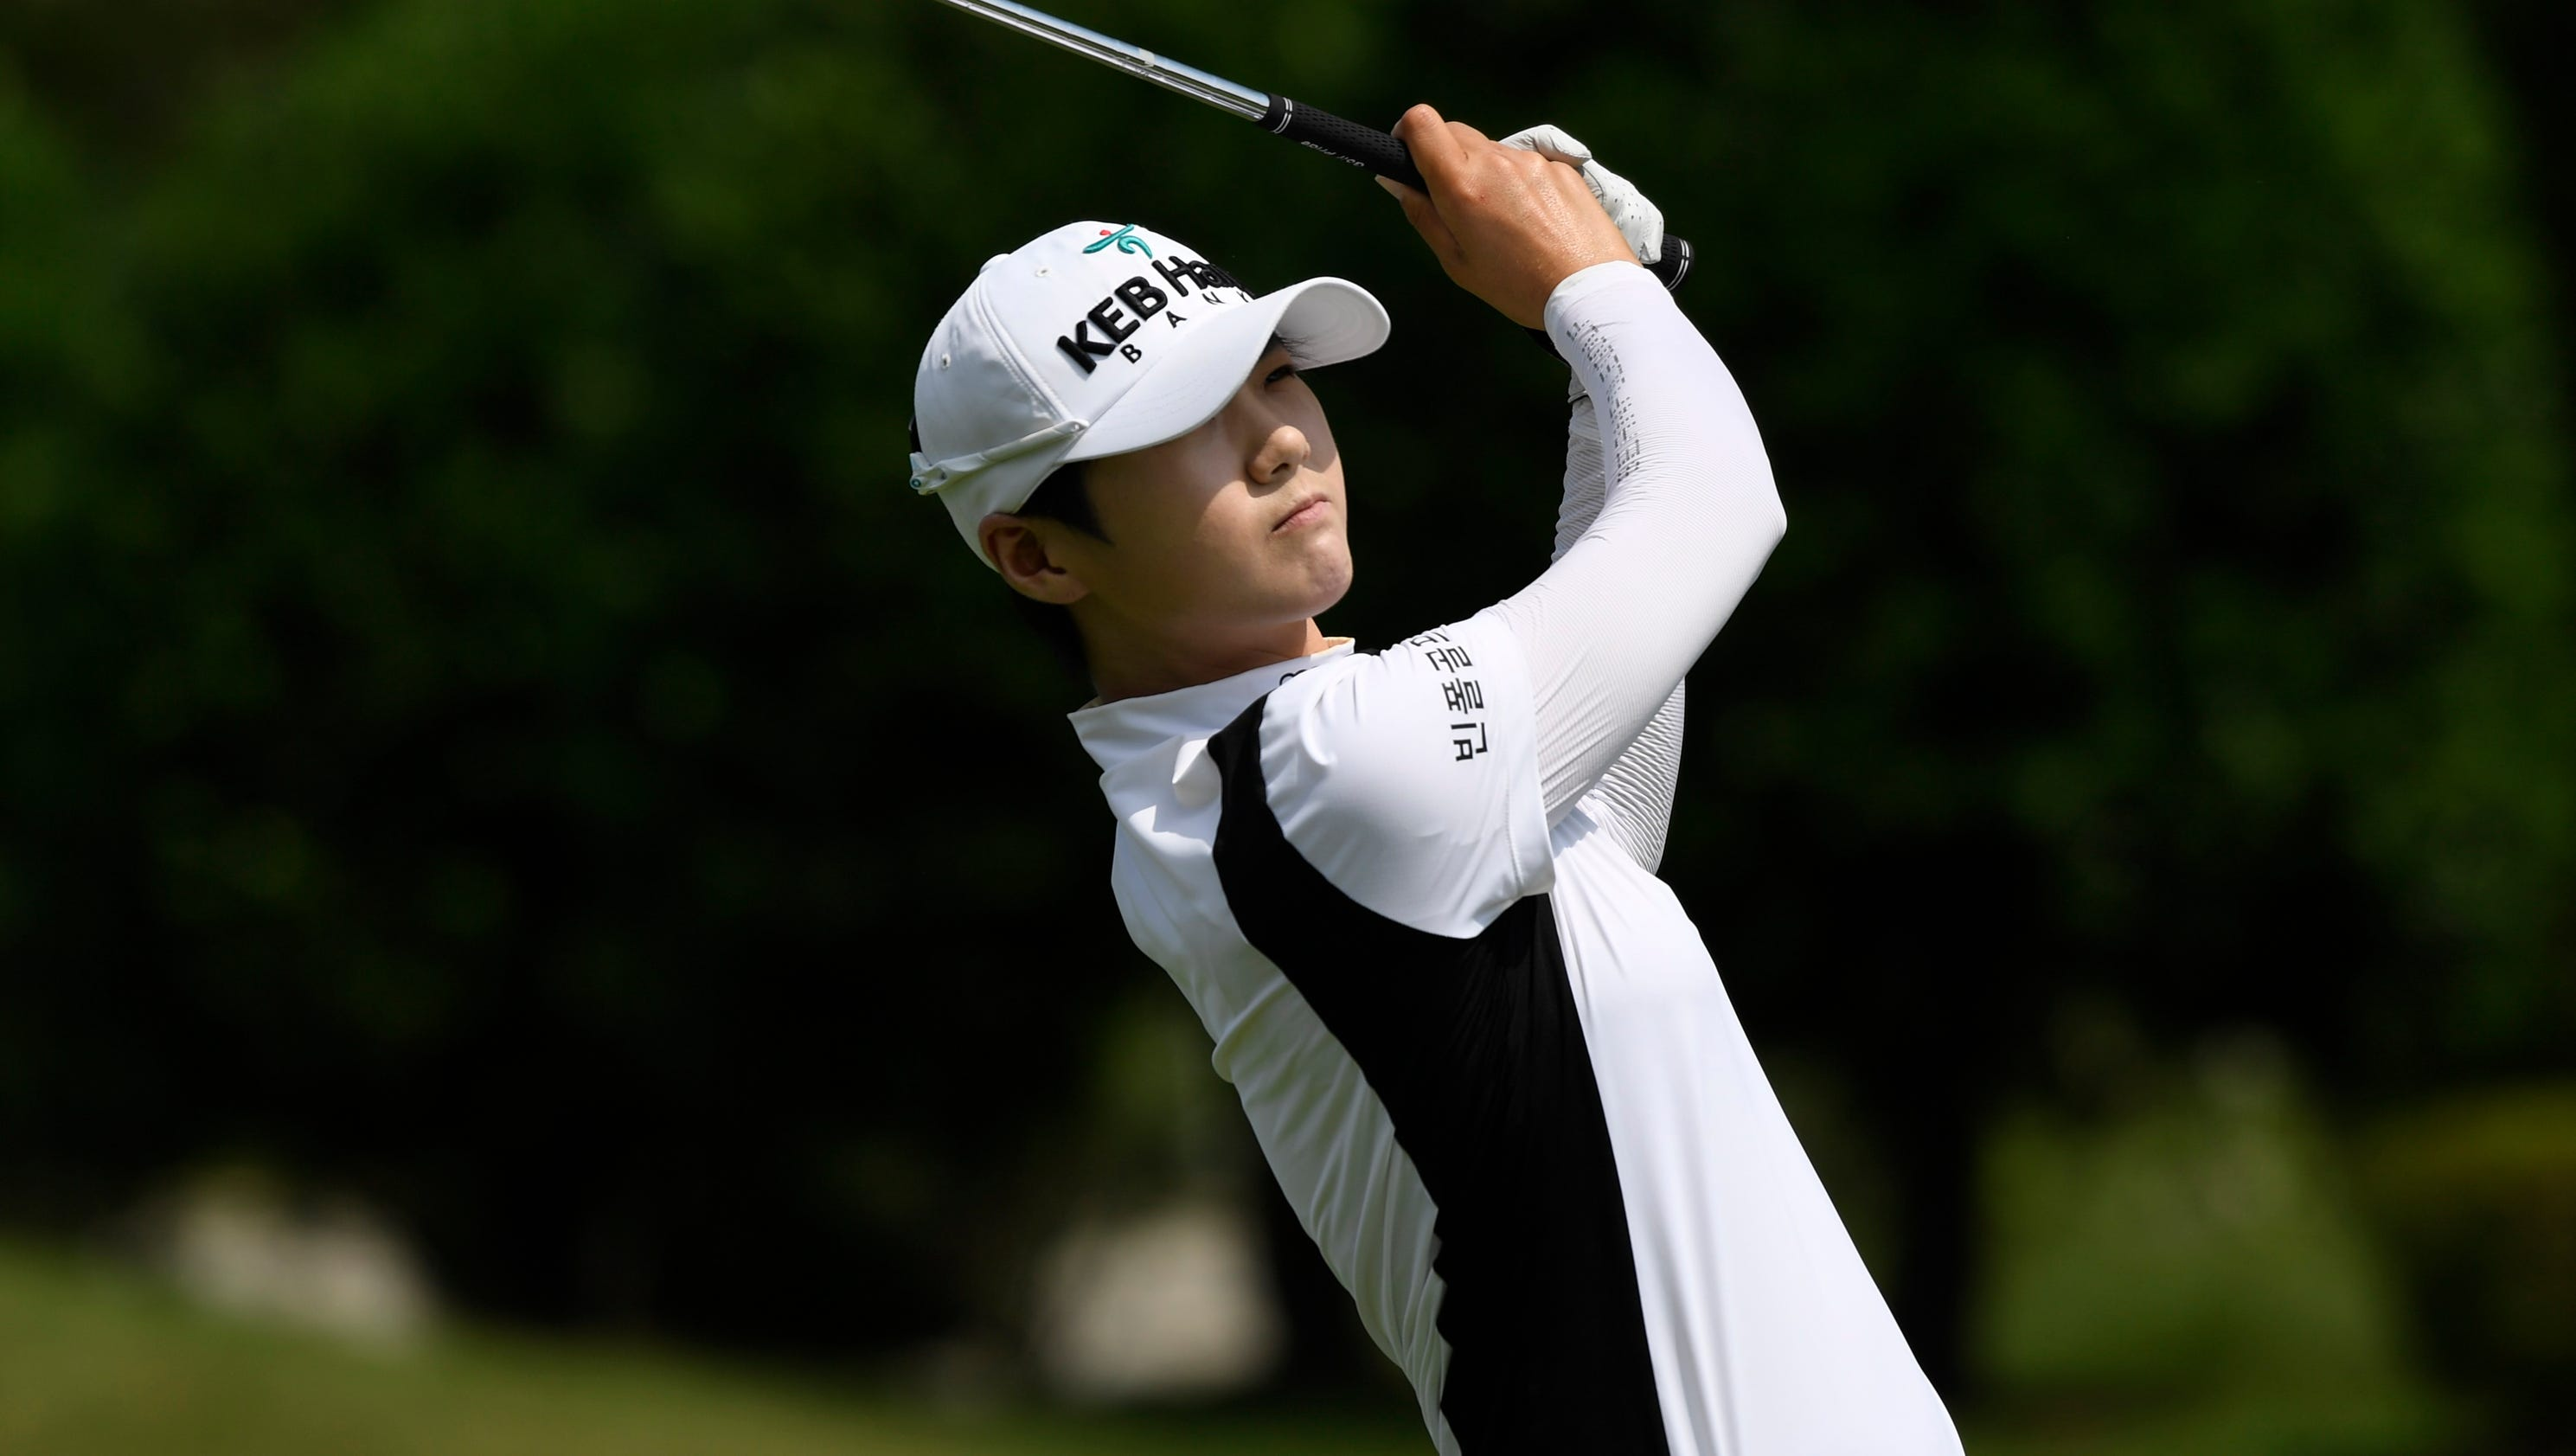 Rookie Sung Hyun Park shoots 8-under 63 to take LPGA lead